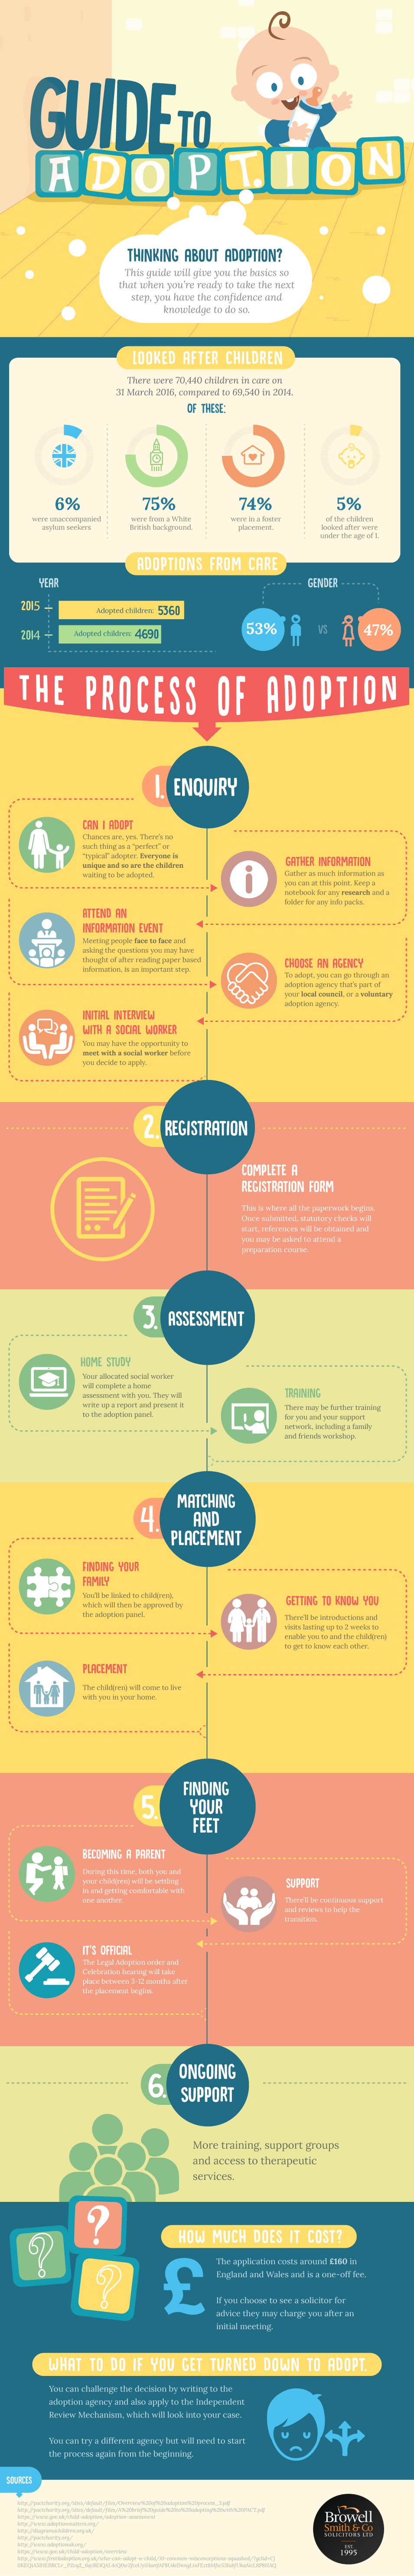 How To Go About The Process Of Adoption - Infographic